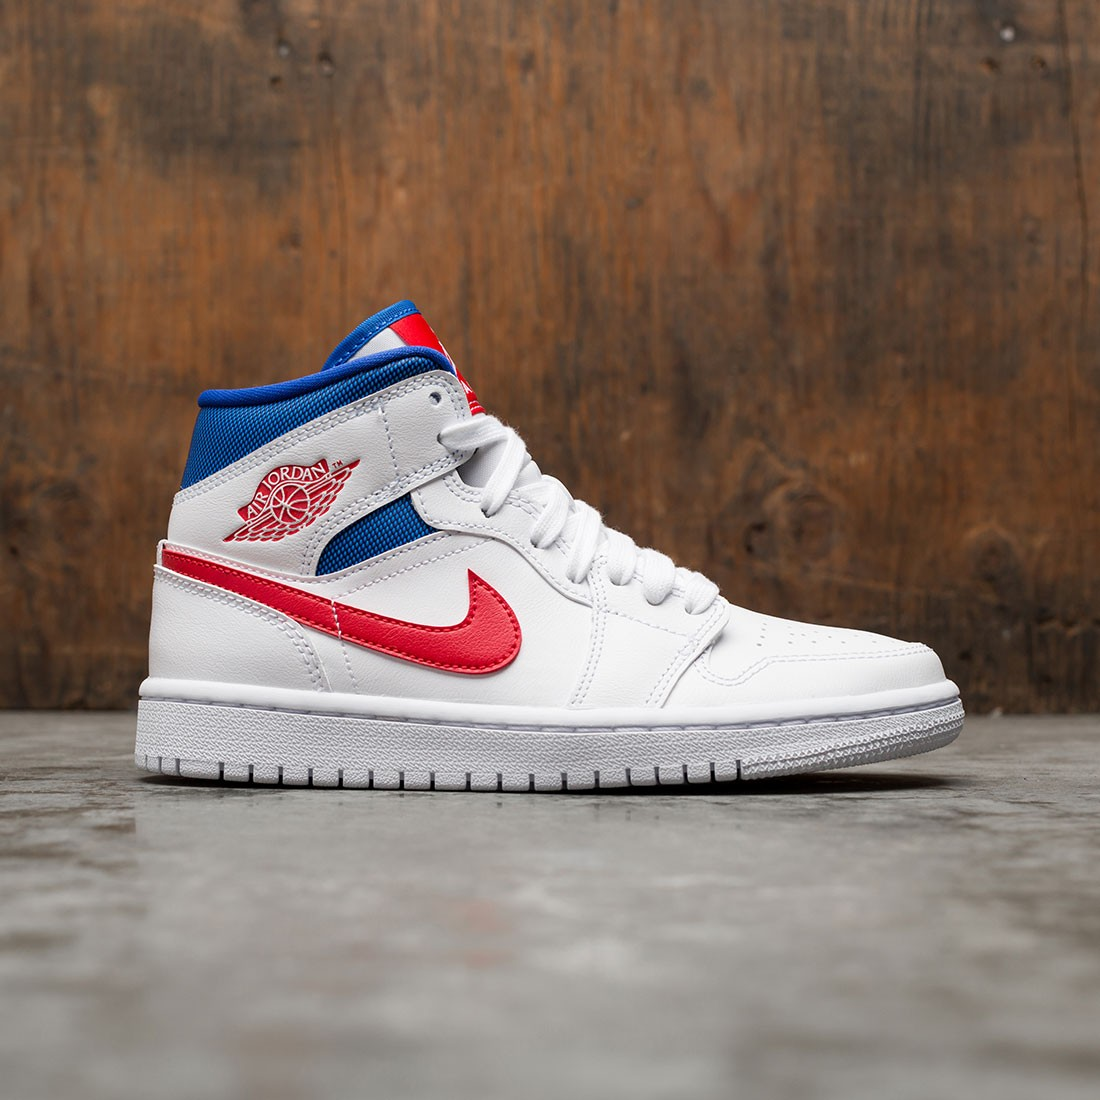 air jordan 1 mid white university red